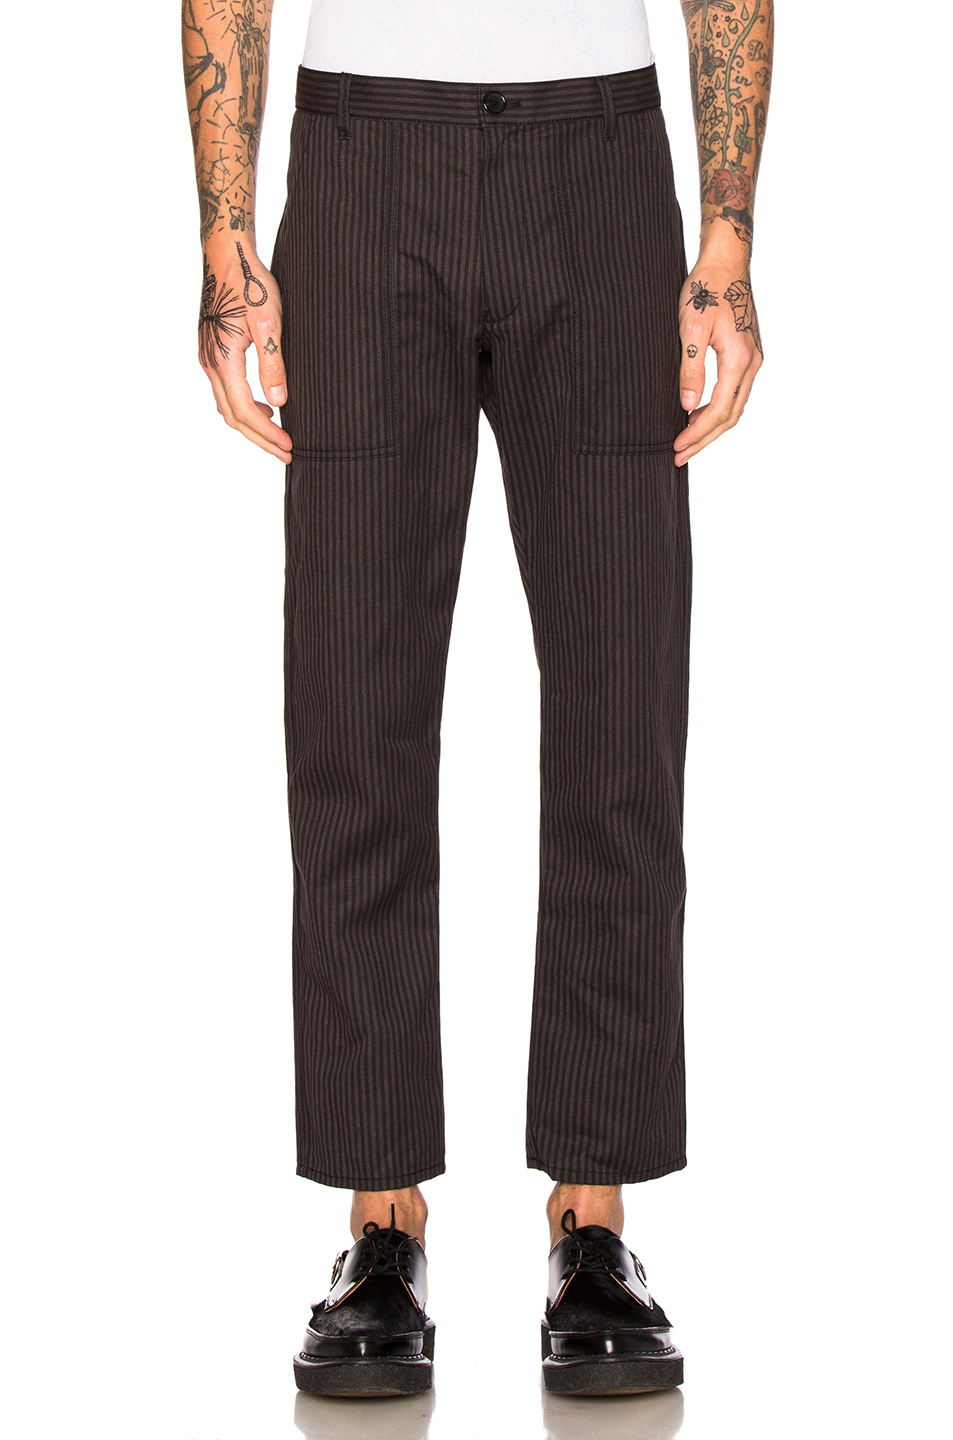 Comme Des Garcons SHIRT Cotton Suiting Pants in Black,Stripes